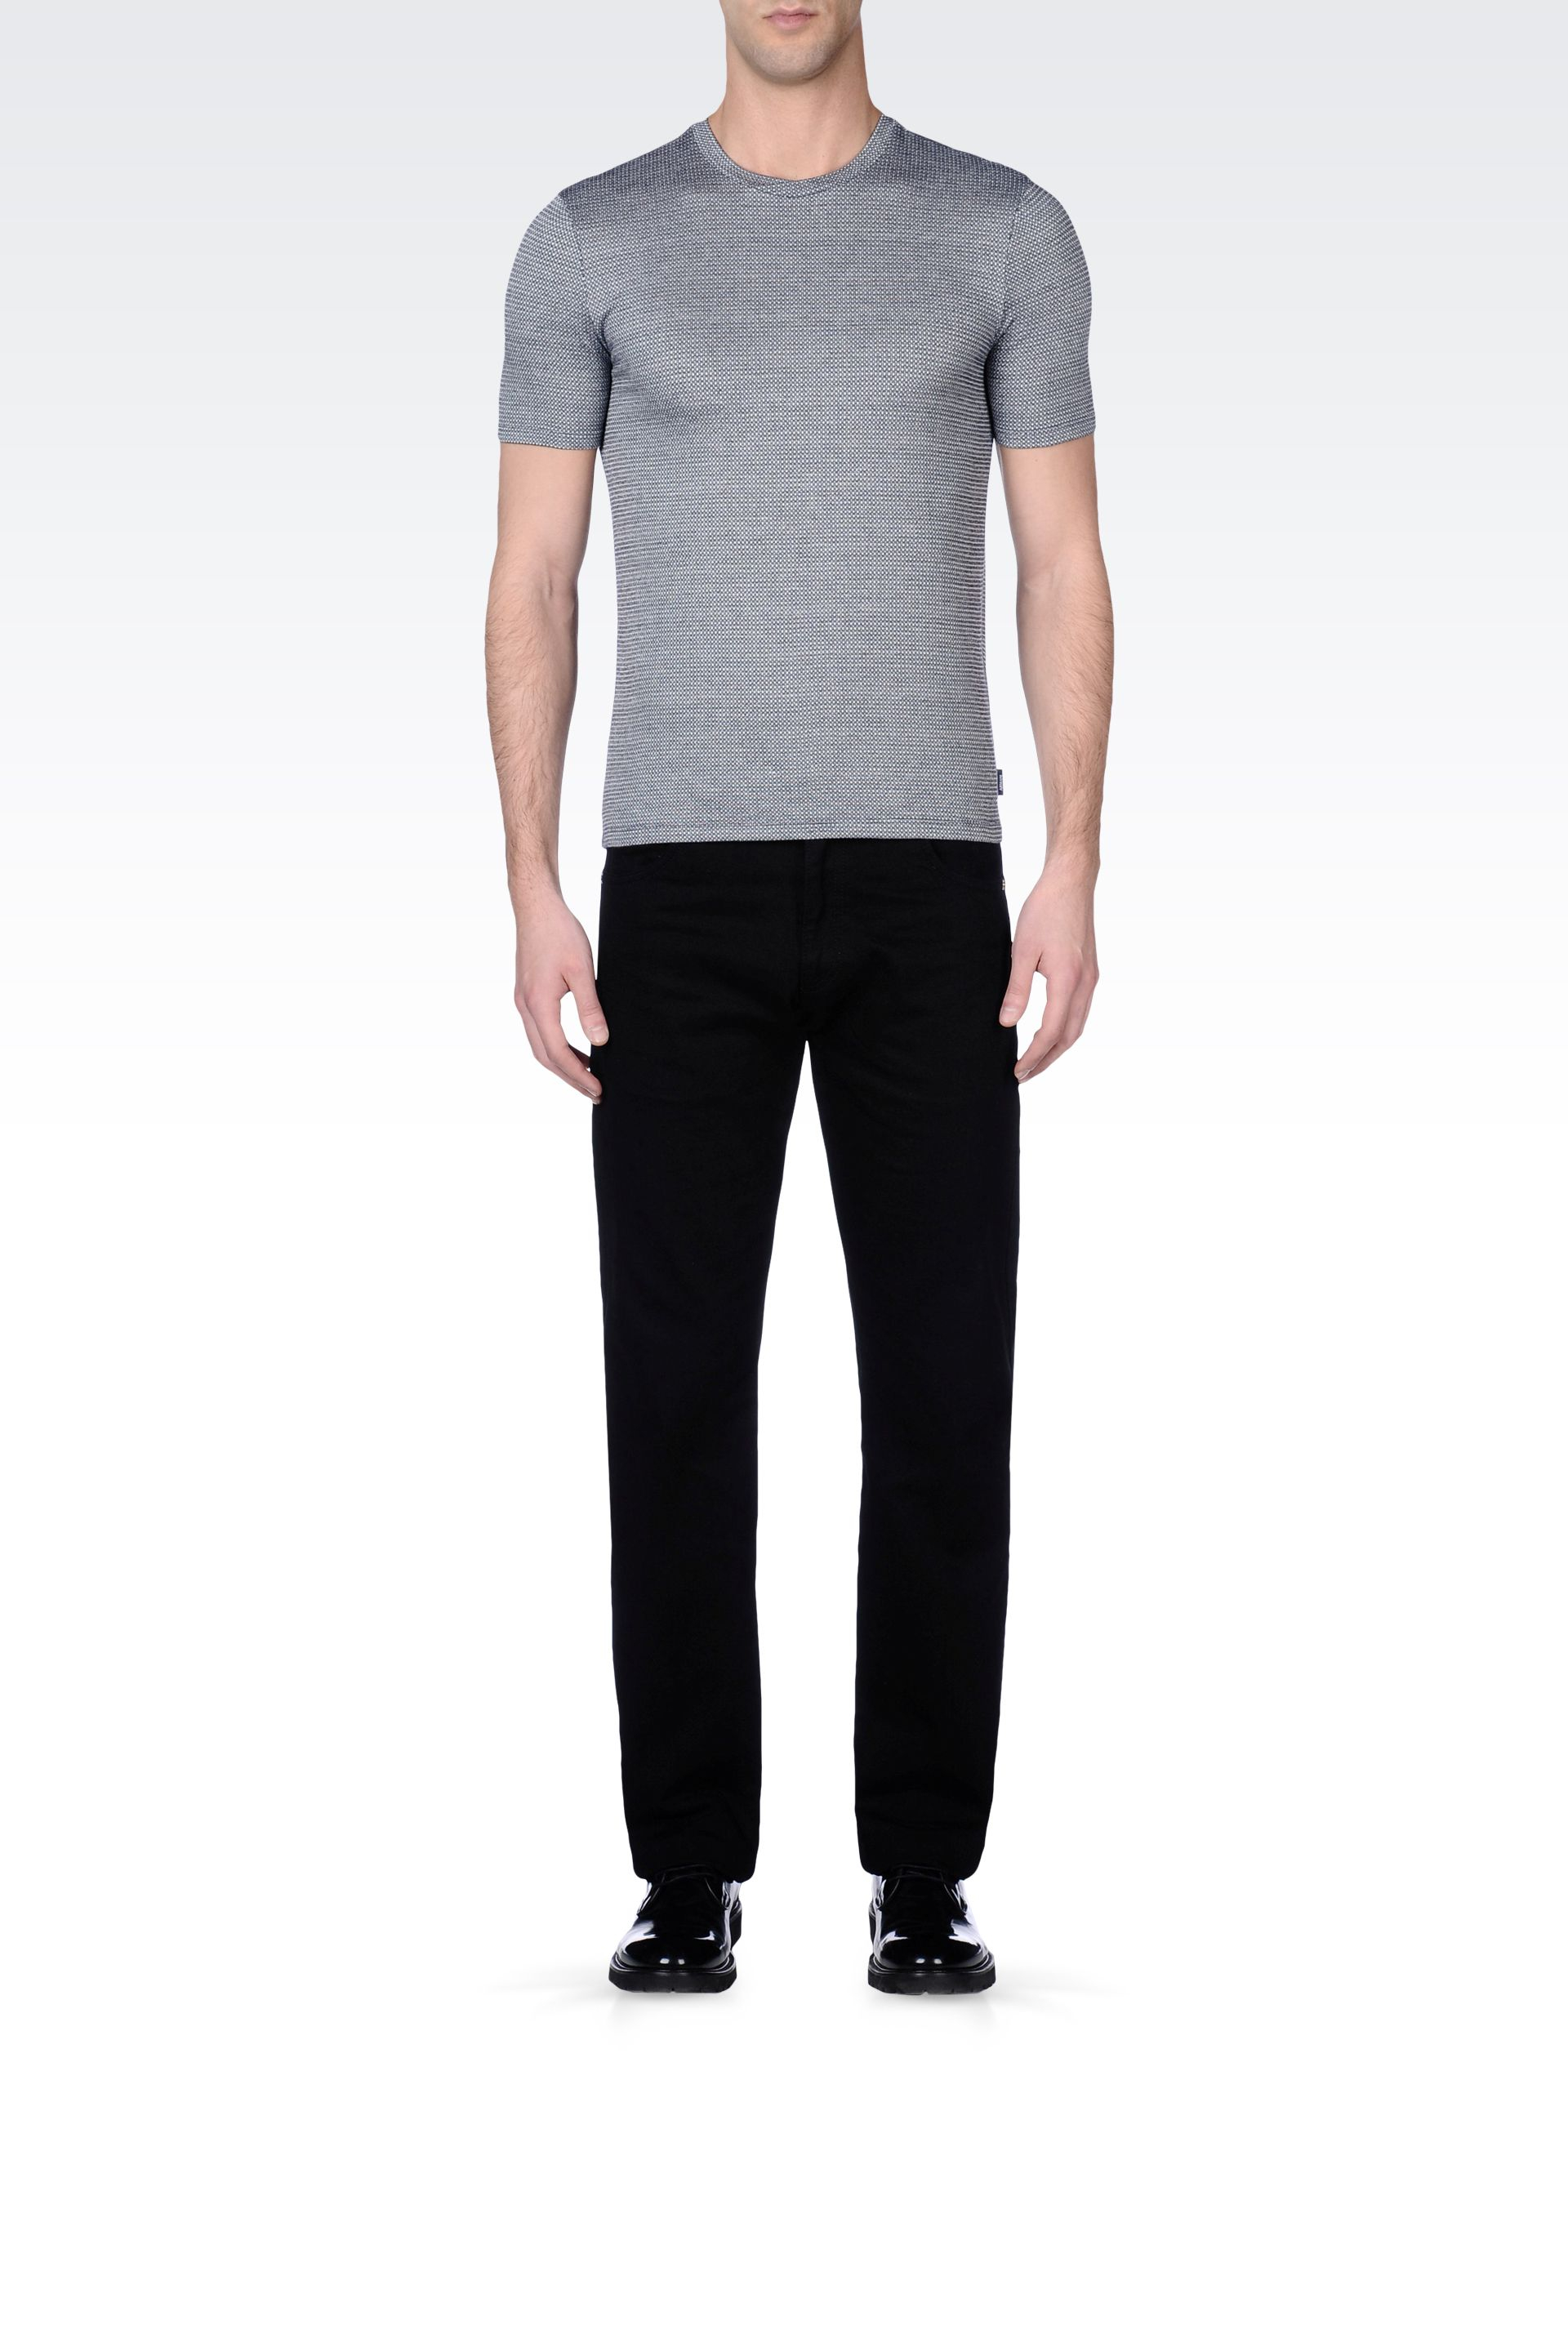 e31fef7d2f5f Lyst - Armani Jersey Tshirt with Micro Pattern Detail in Gray for Men